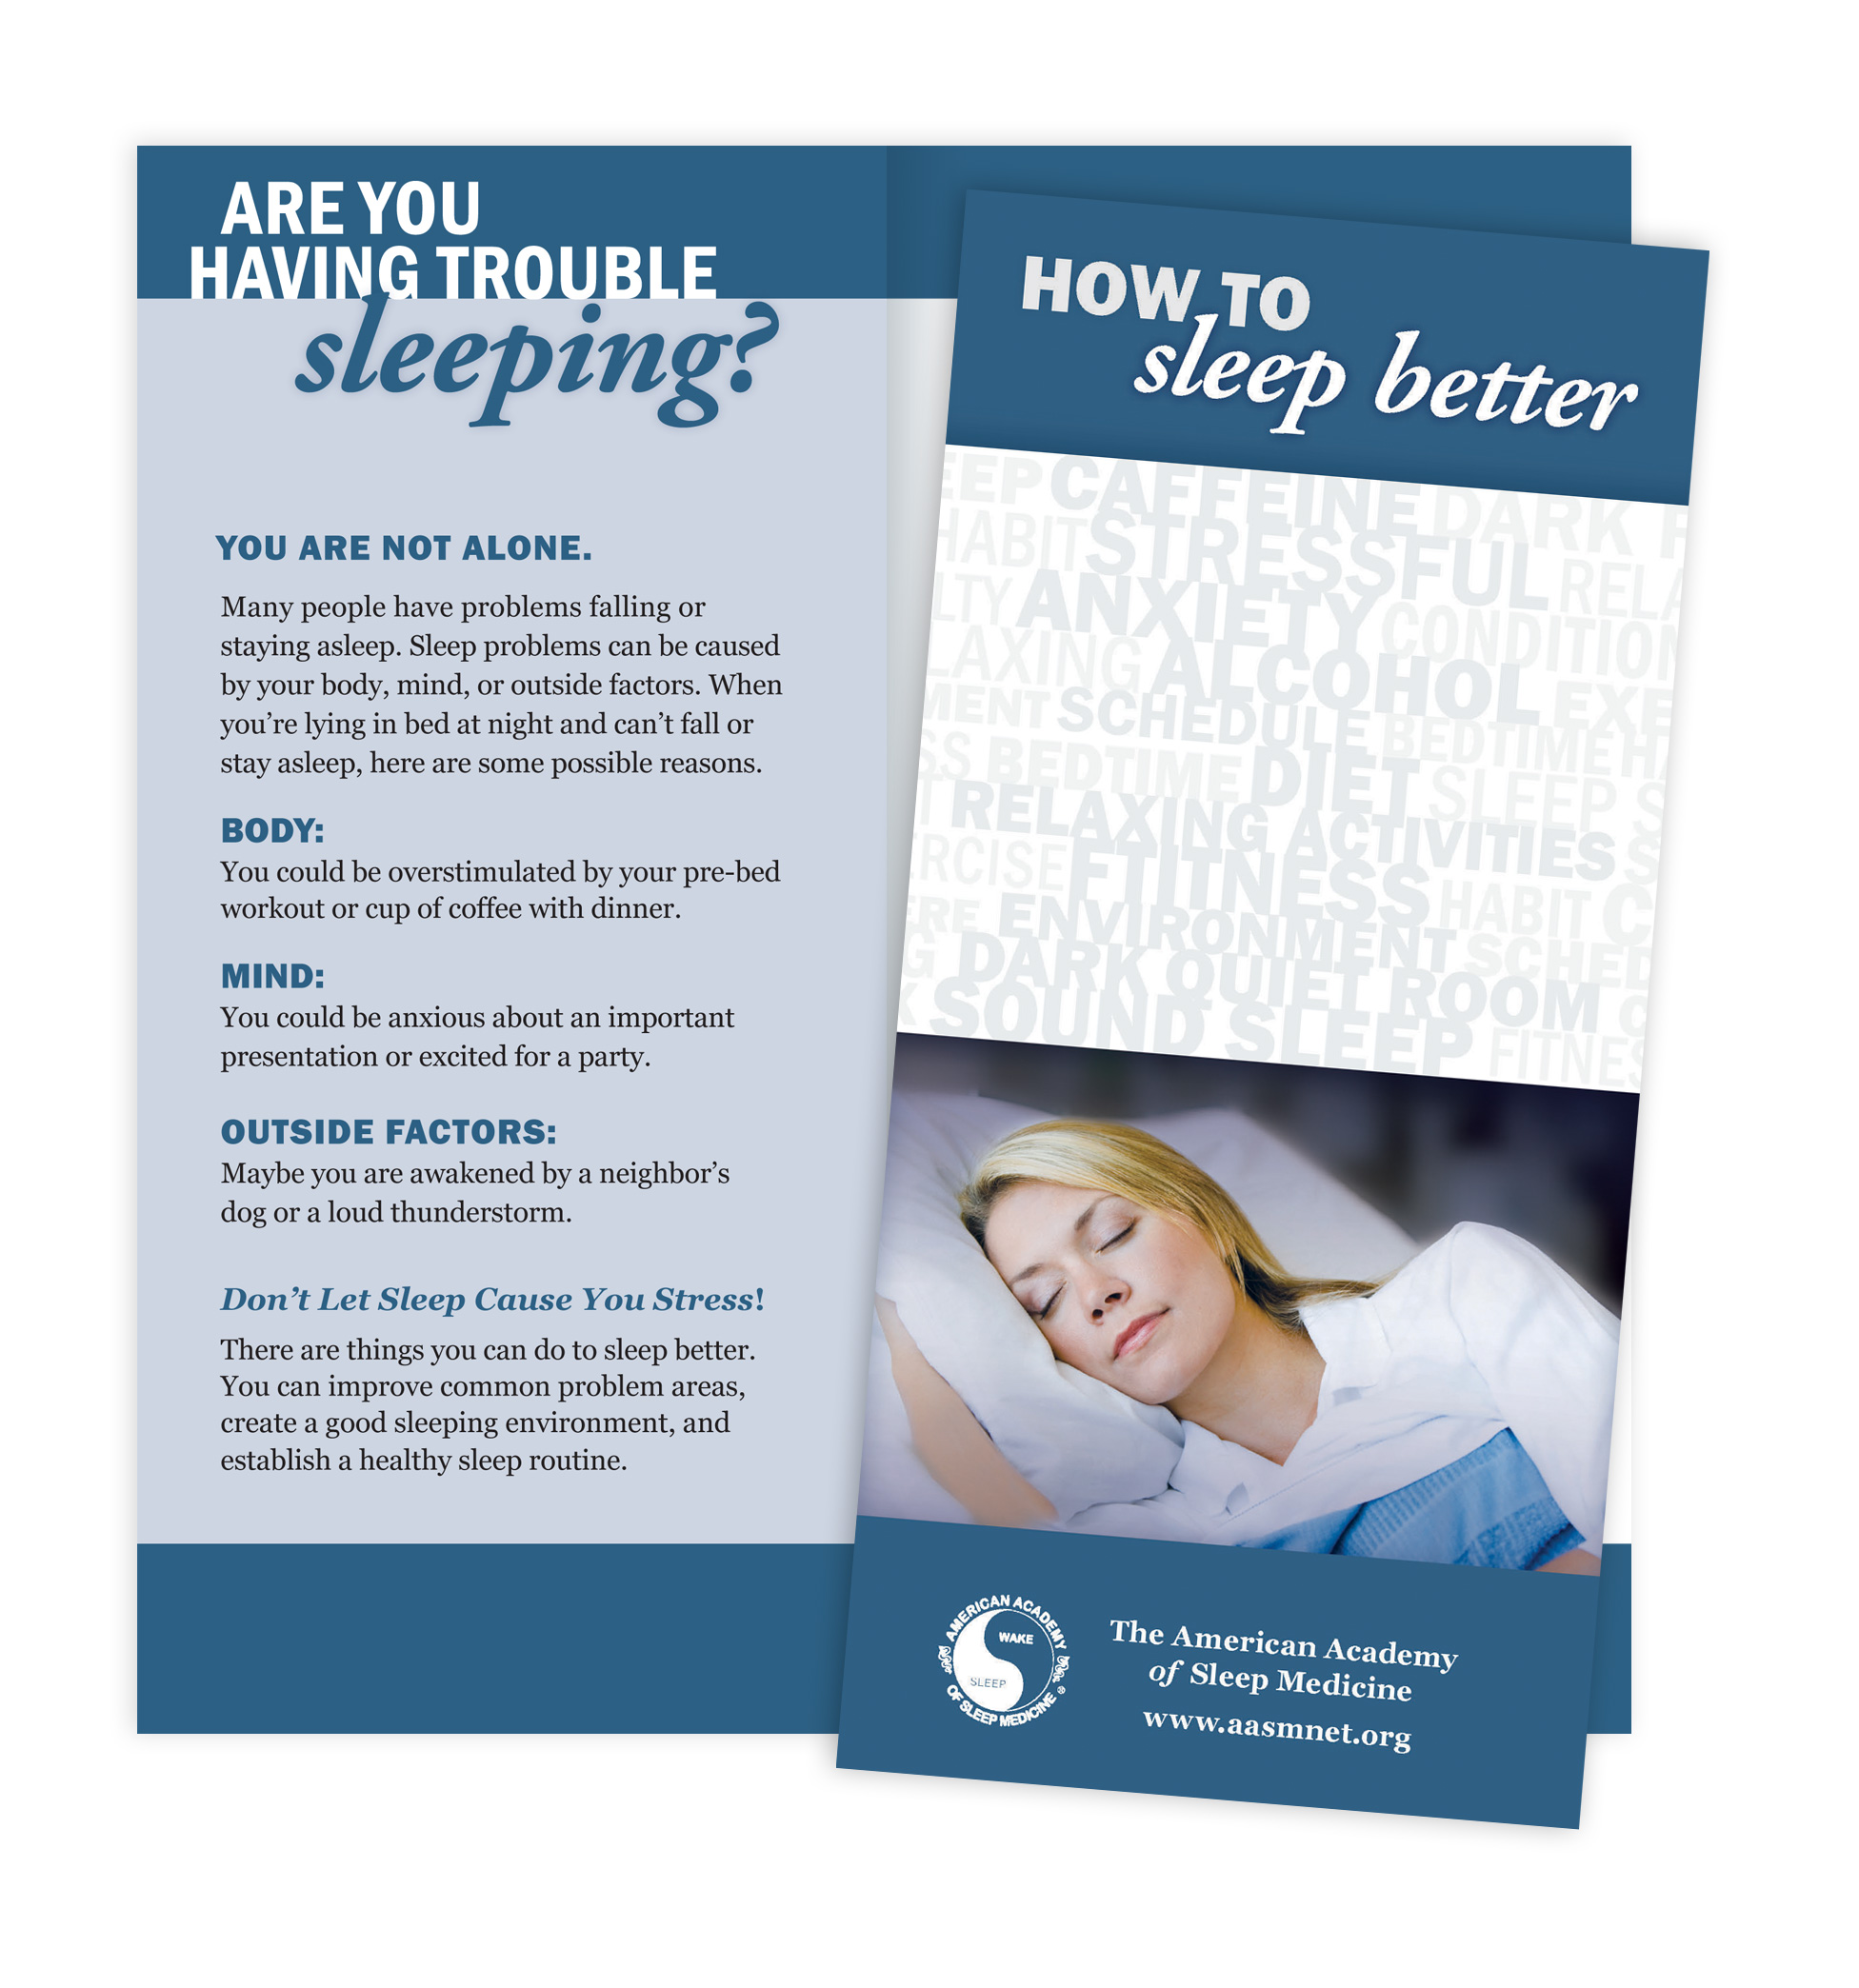 How to Sleep Better Patient Education Brochures (50 brochures)